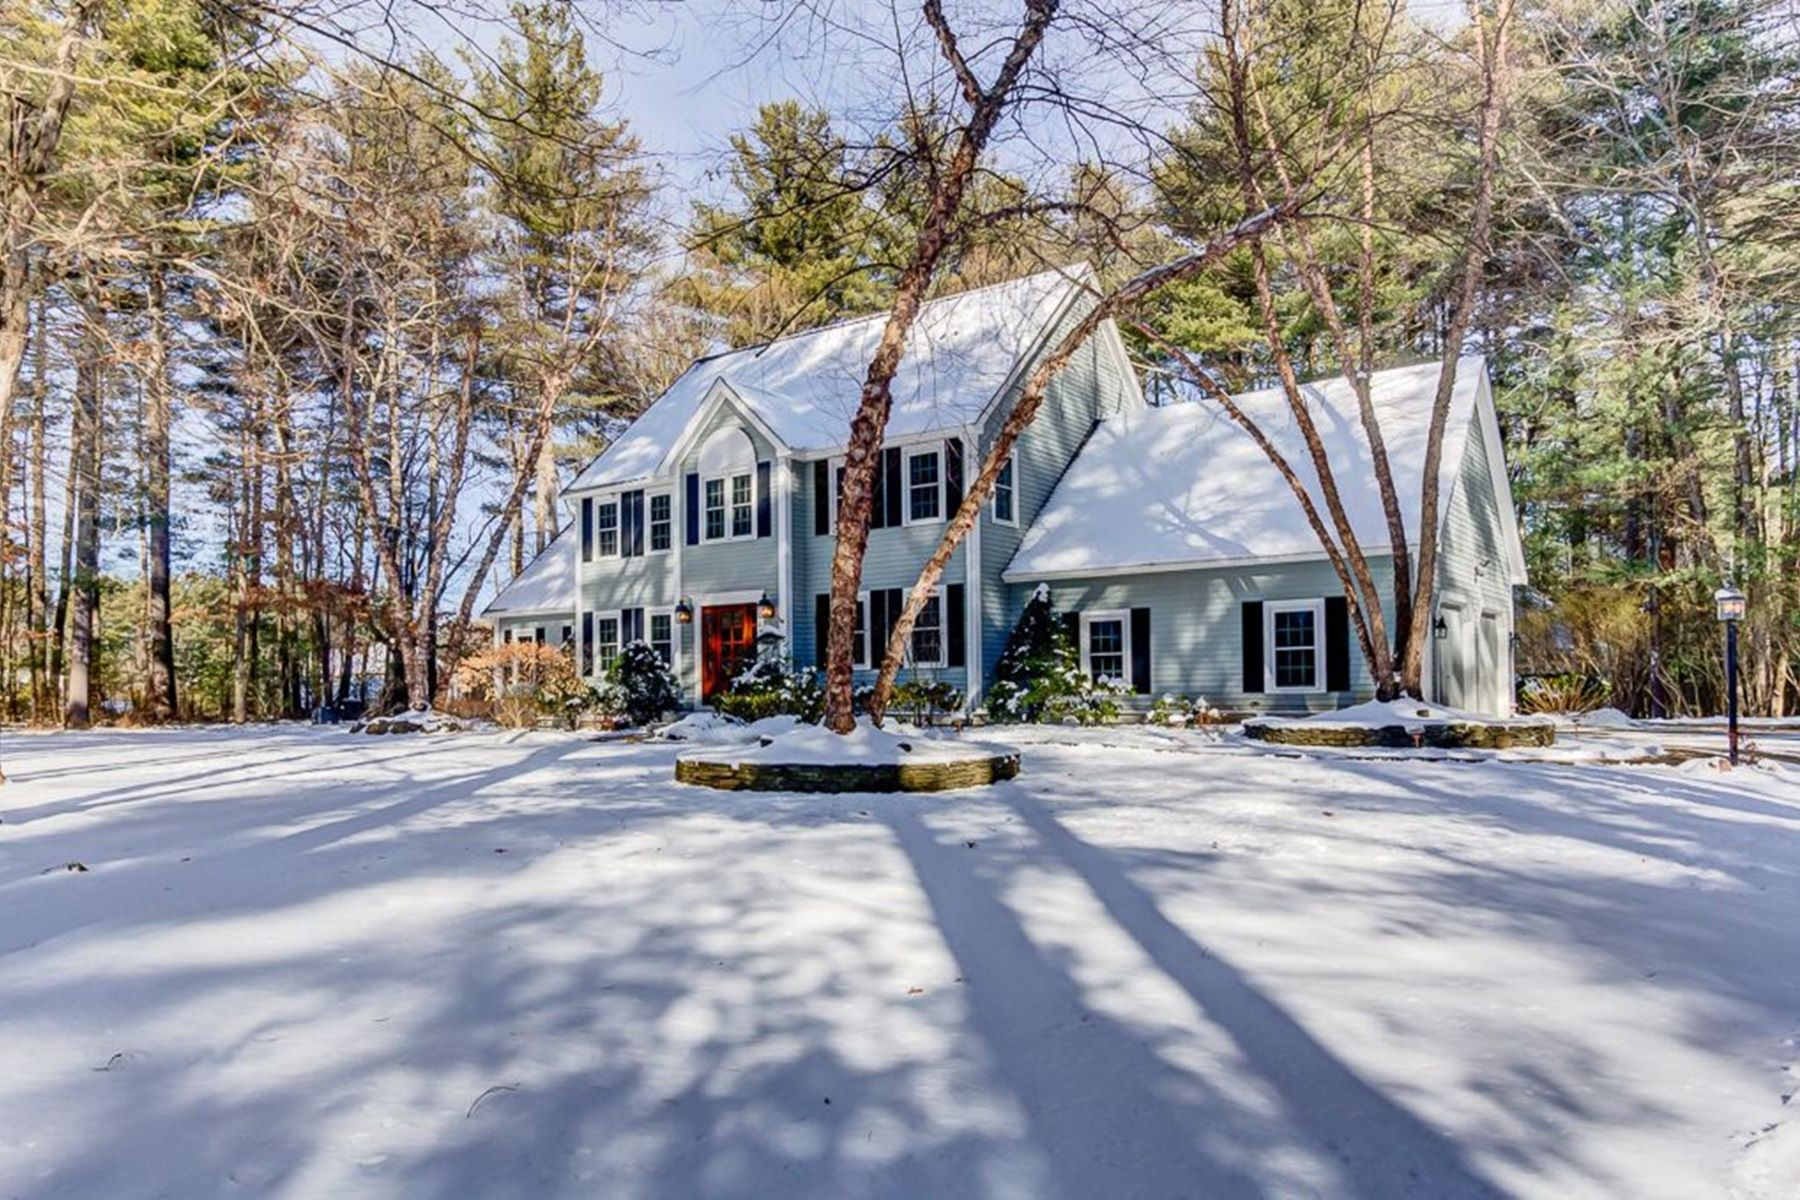 Single Family Home for Sale at Gorgeous Colonial near Goss Pond 6 Green Lane Upton, Massachusetts 01568 United States